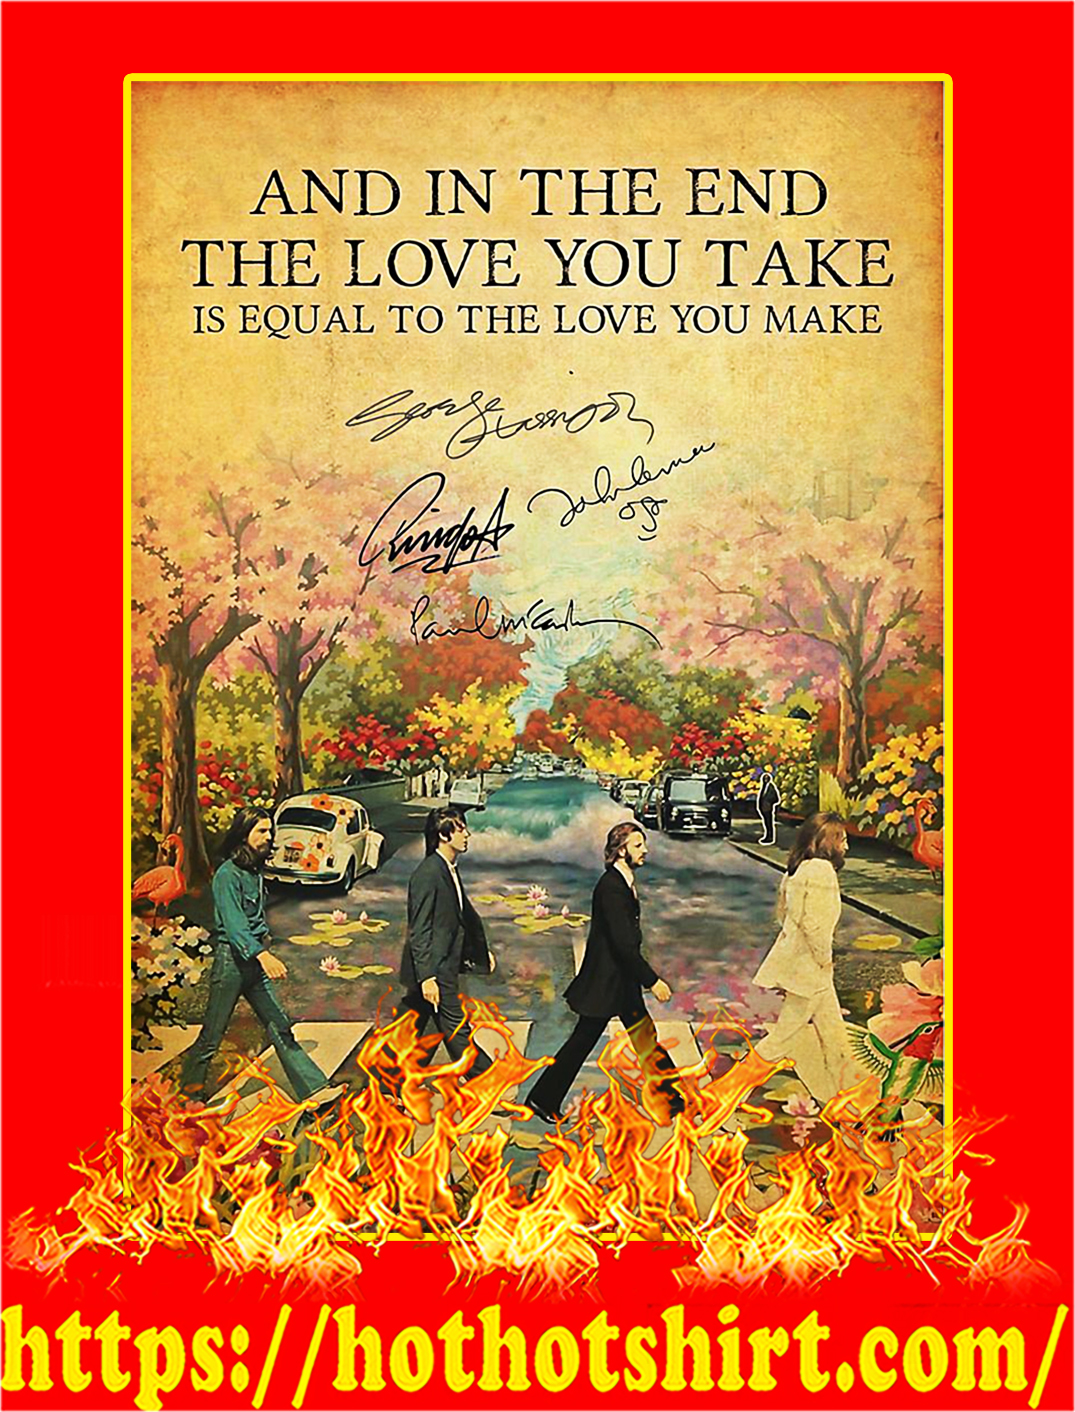 The Beatles And In The End Signature Poster - A4